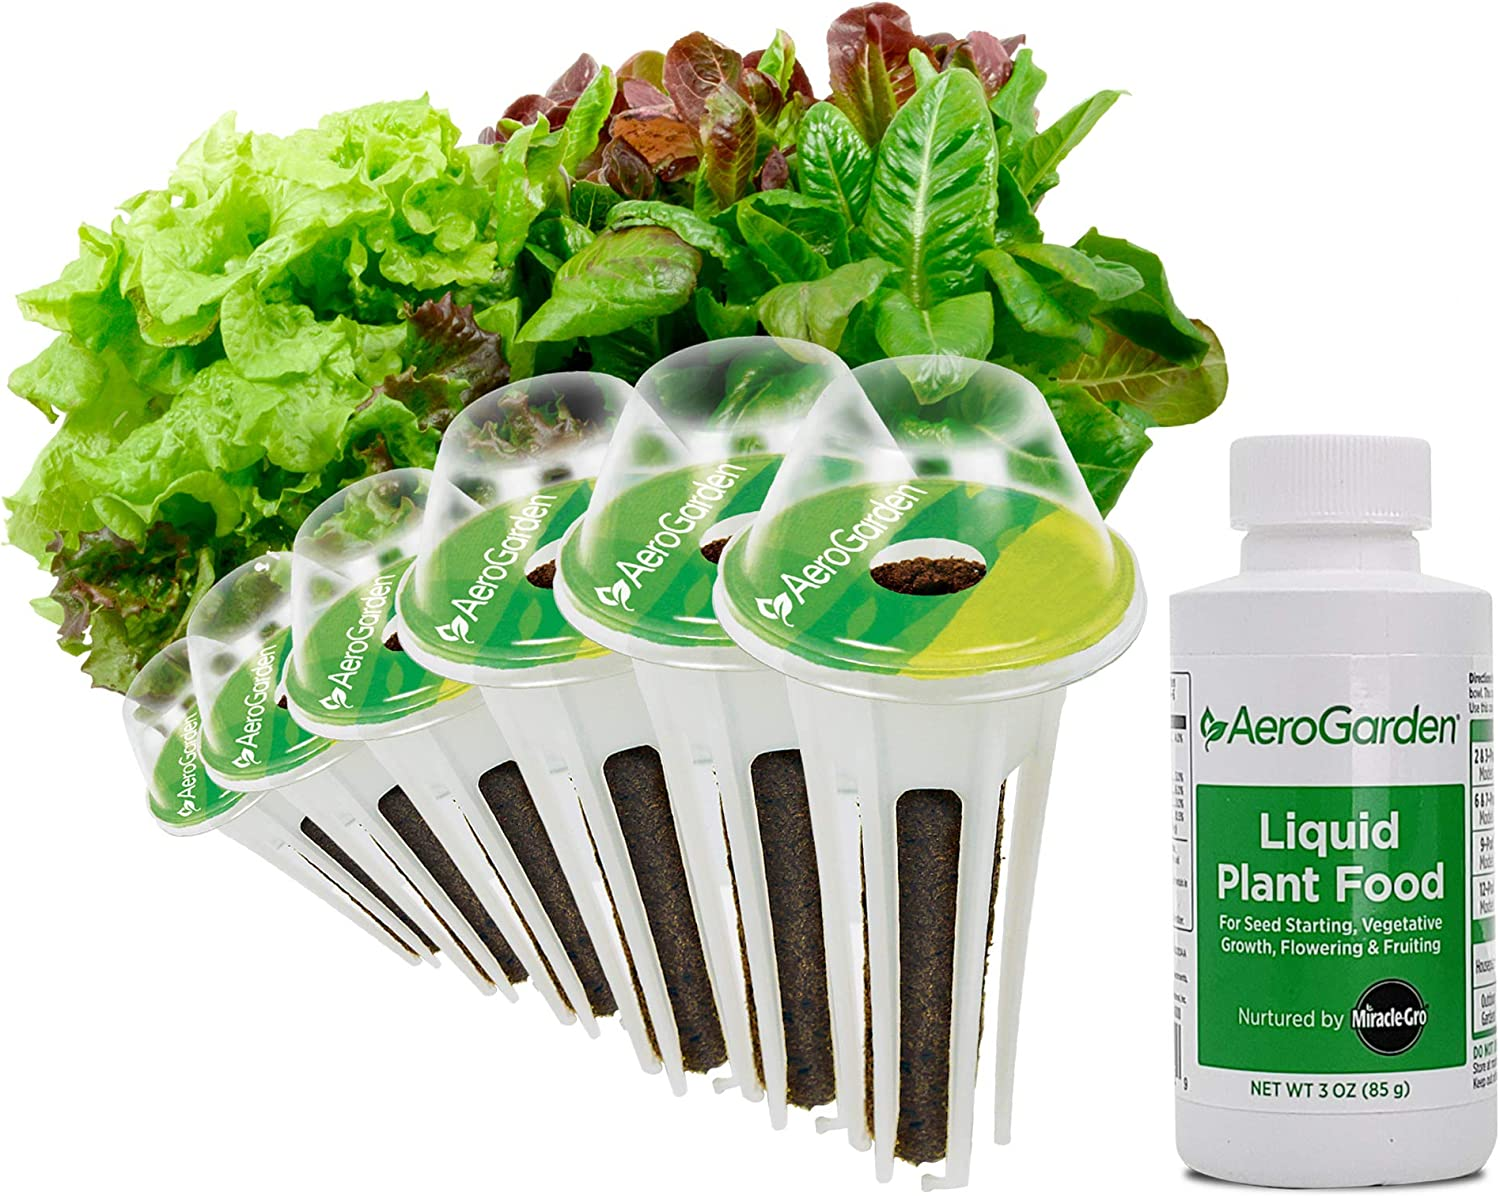 AeroGarden Heirloom Salad Greens Seed Pod Kit, 6